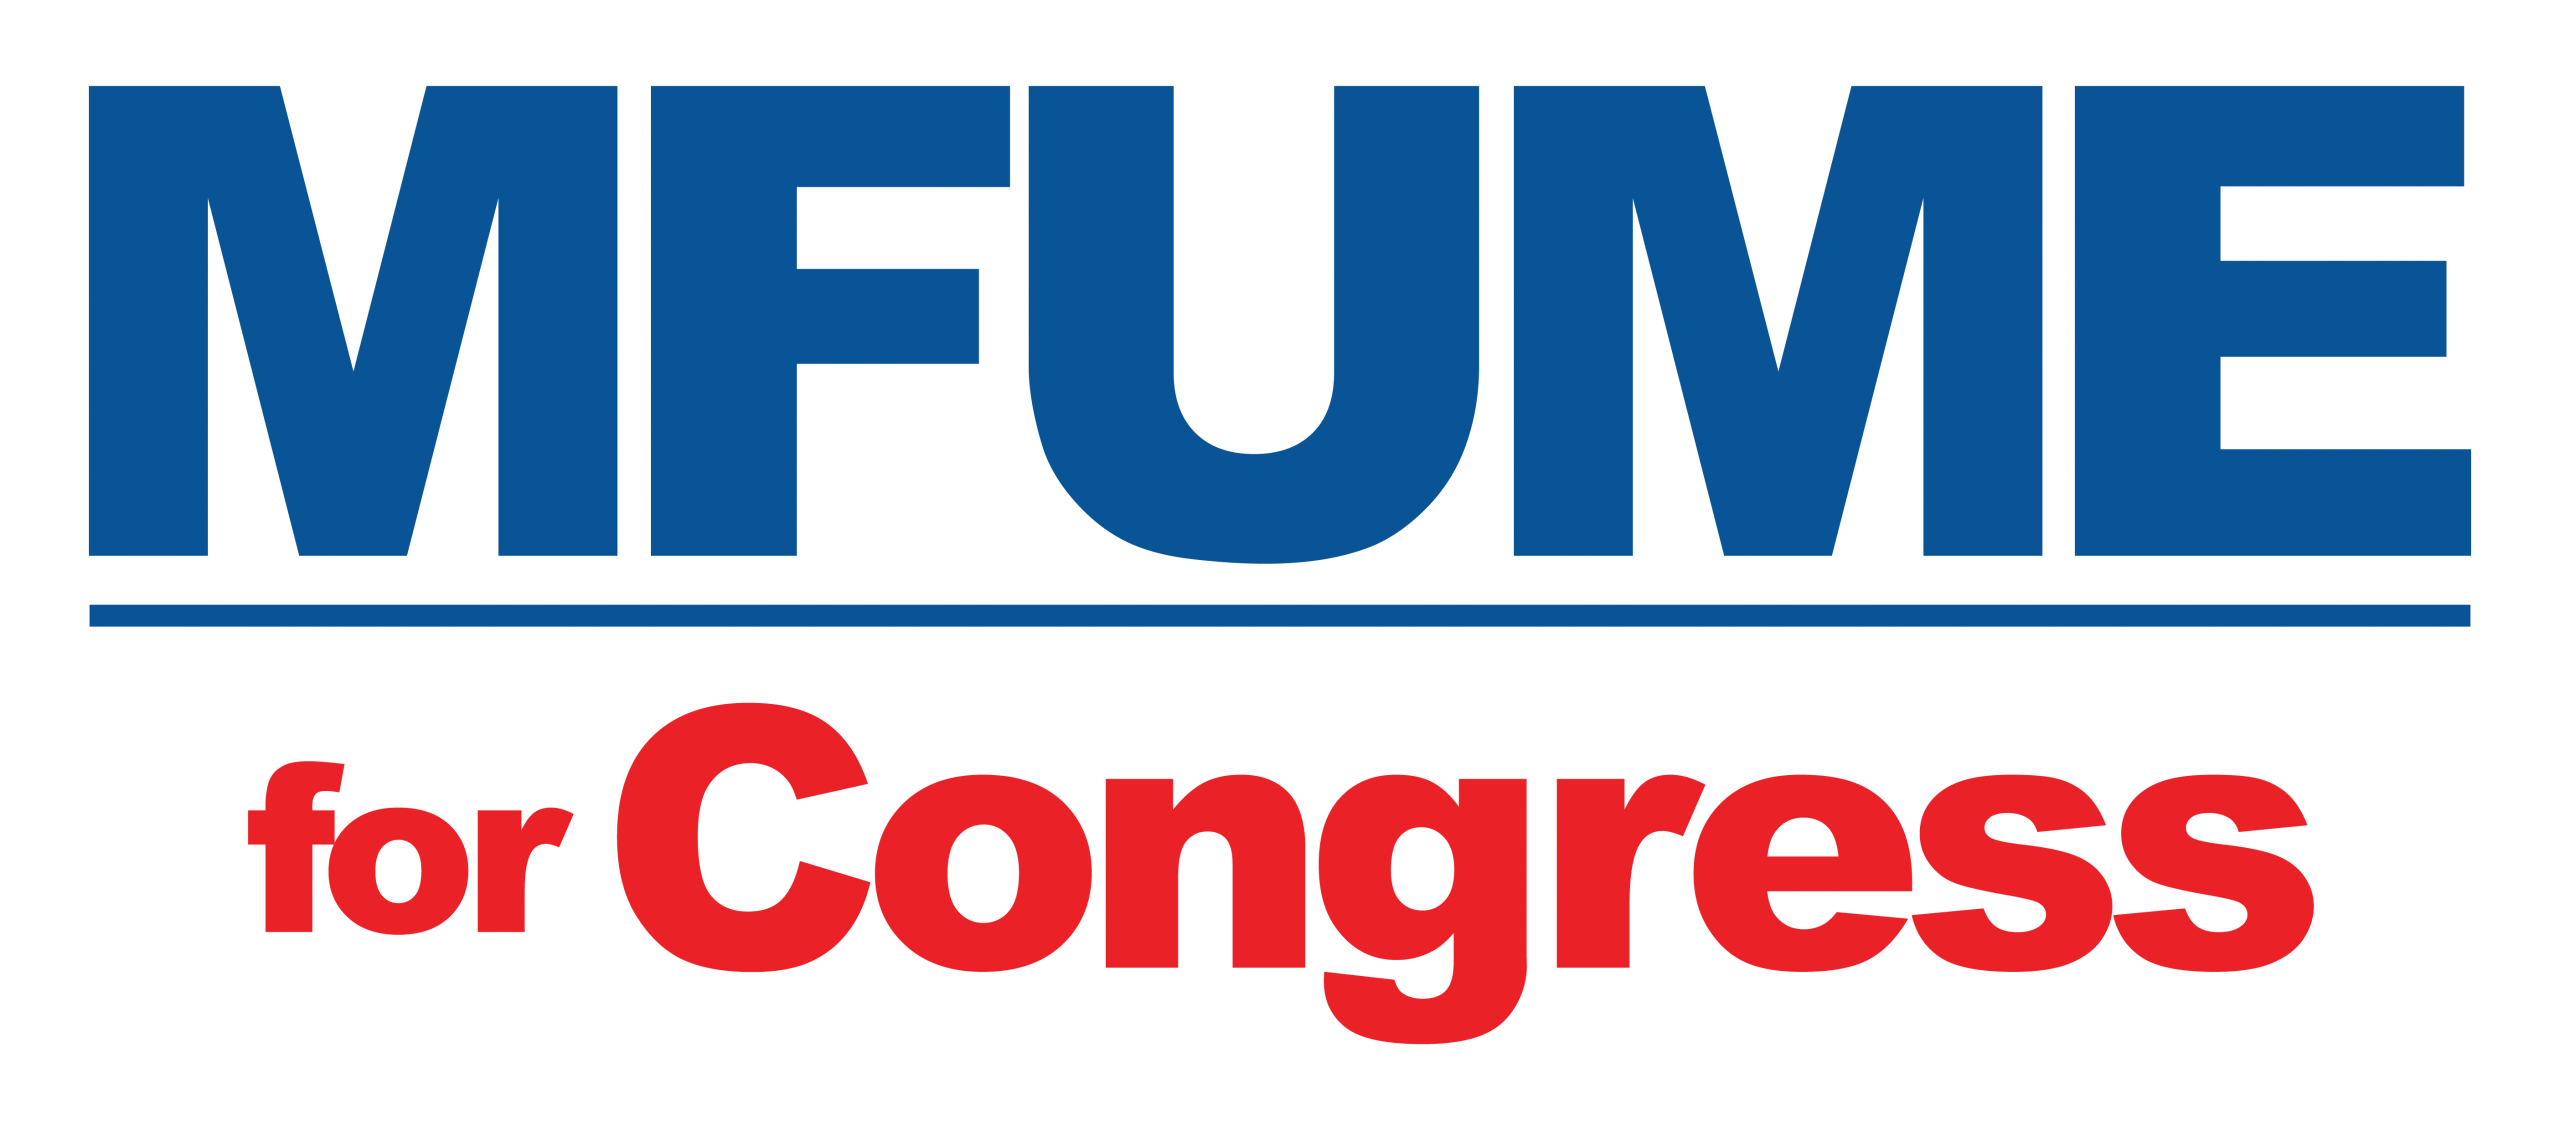 Mfume for Congress